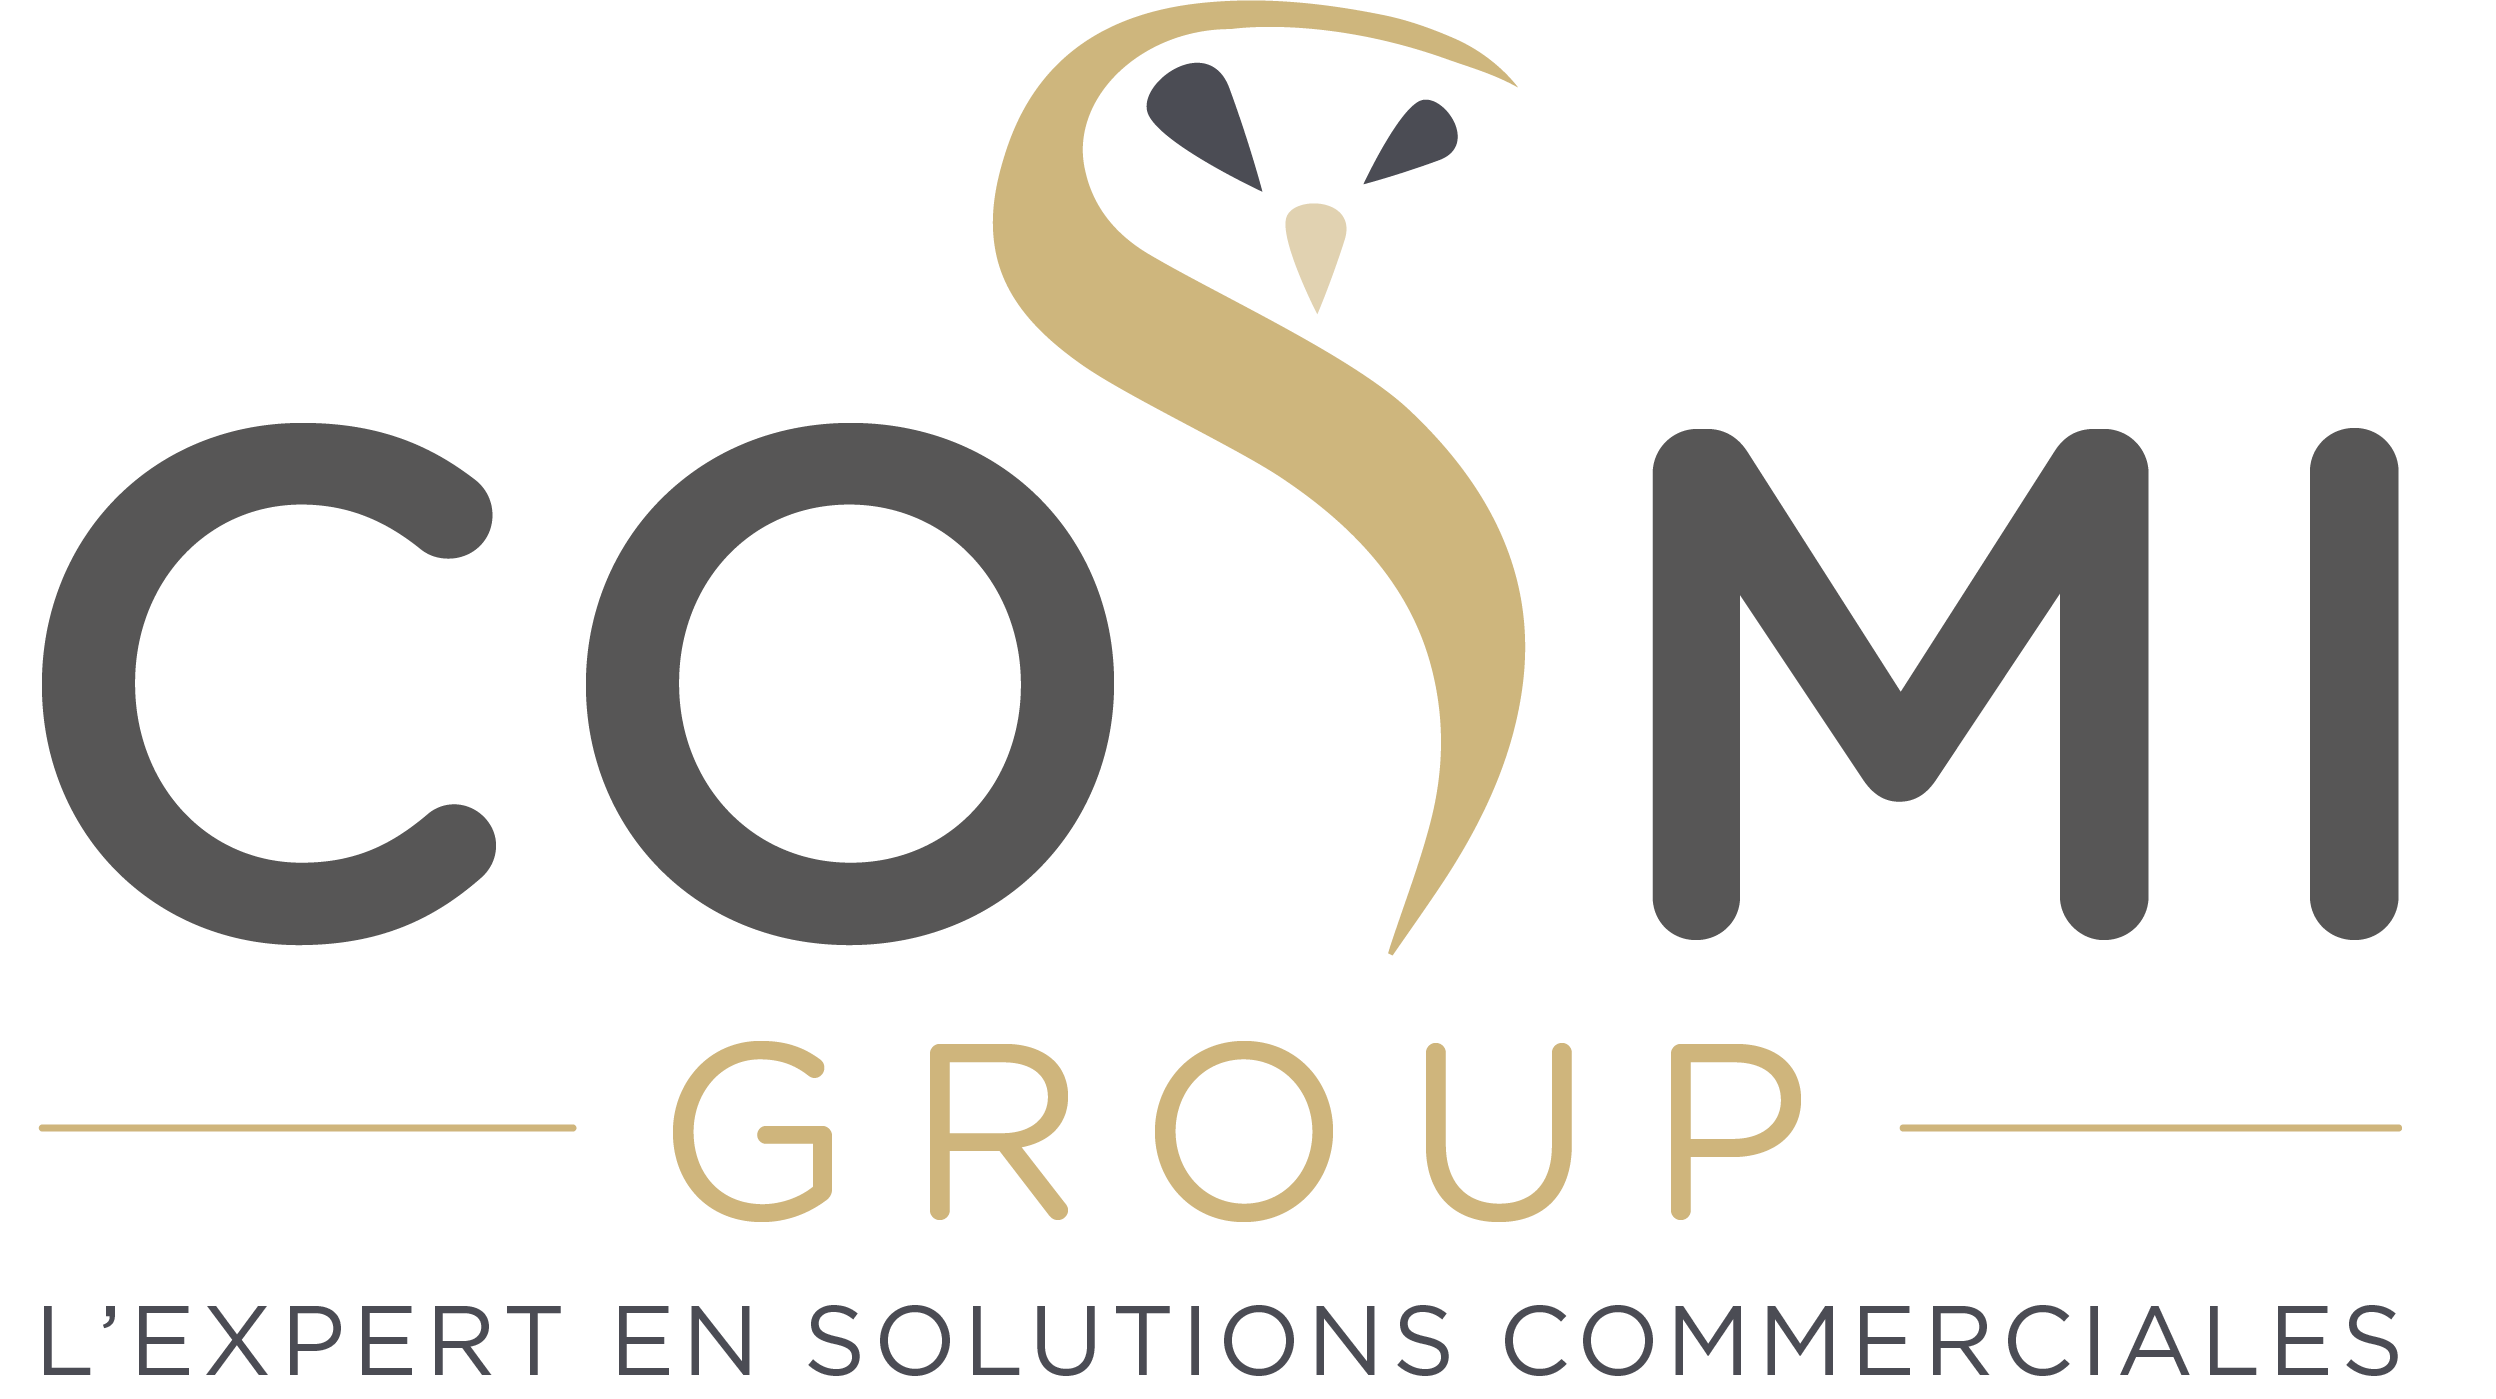 coSmi group : l'expert en solutions commerciales